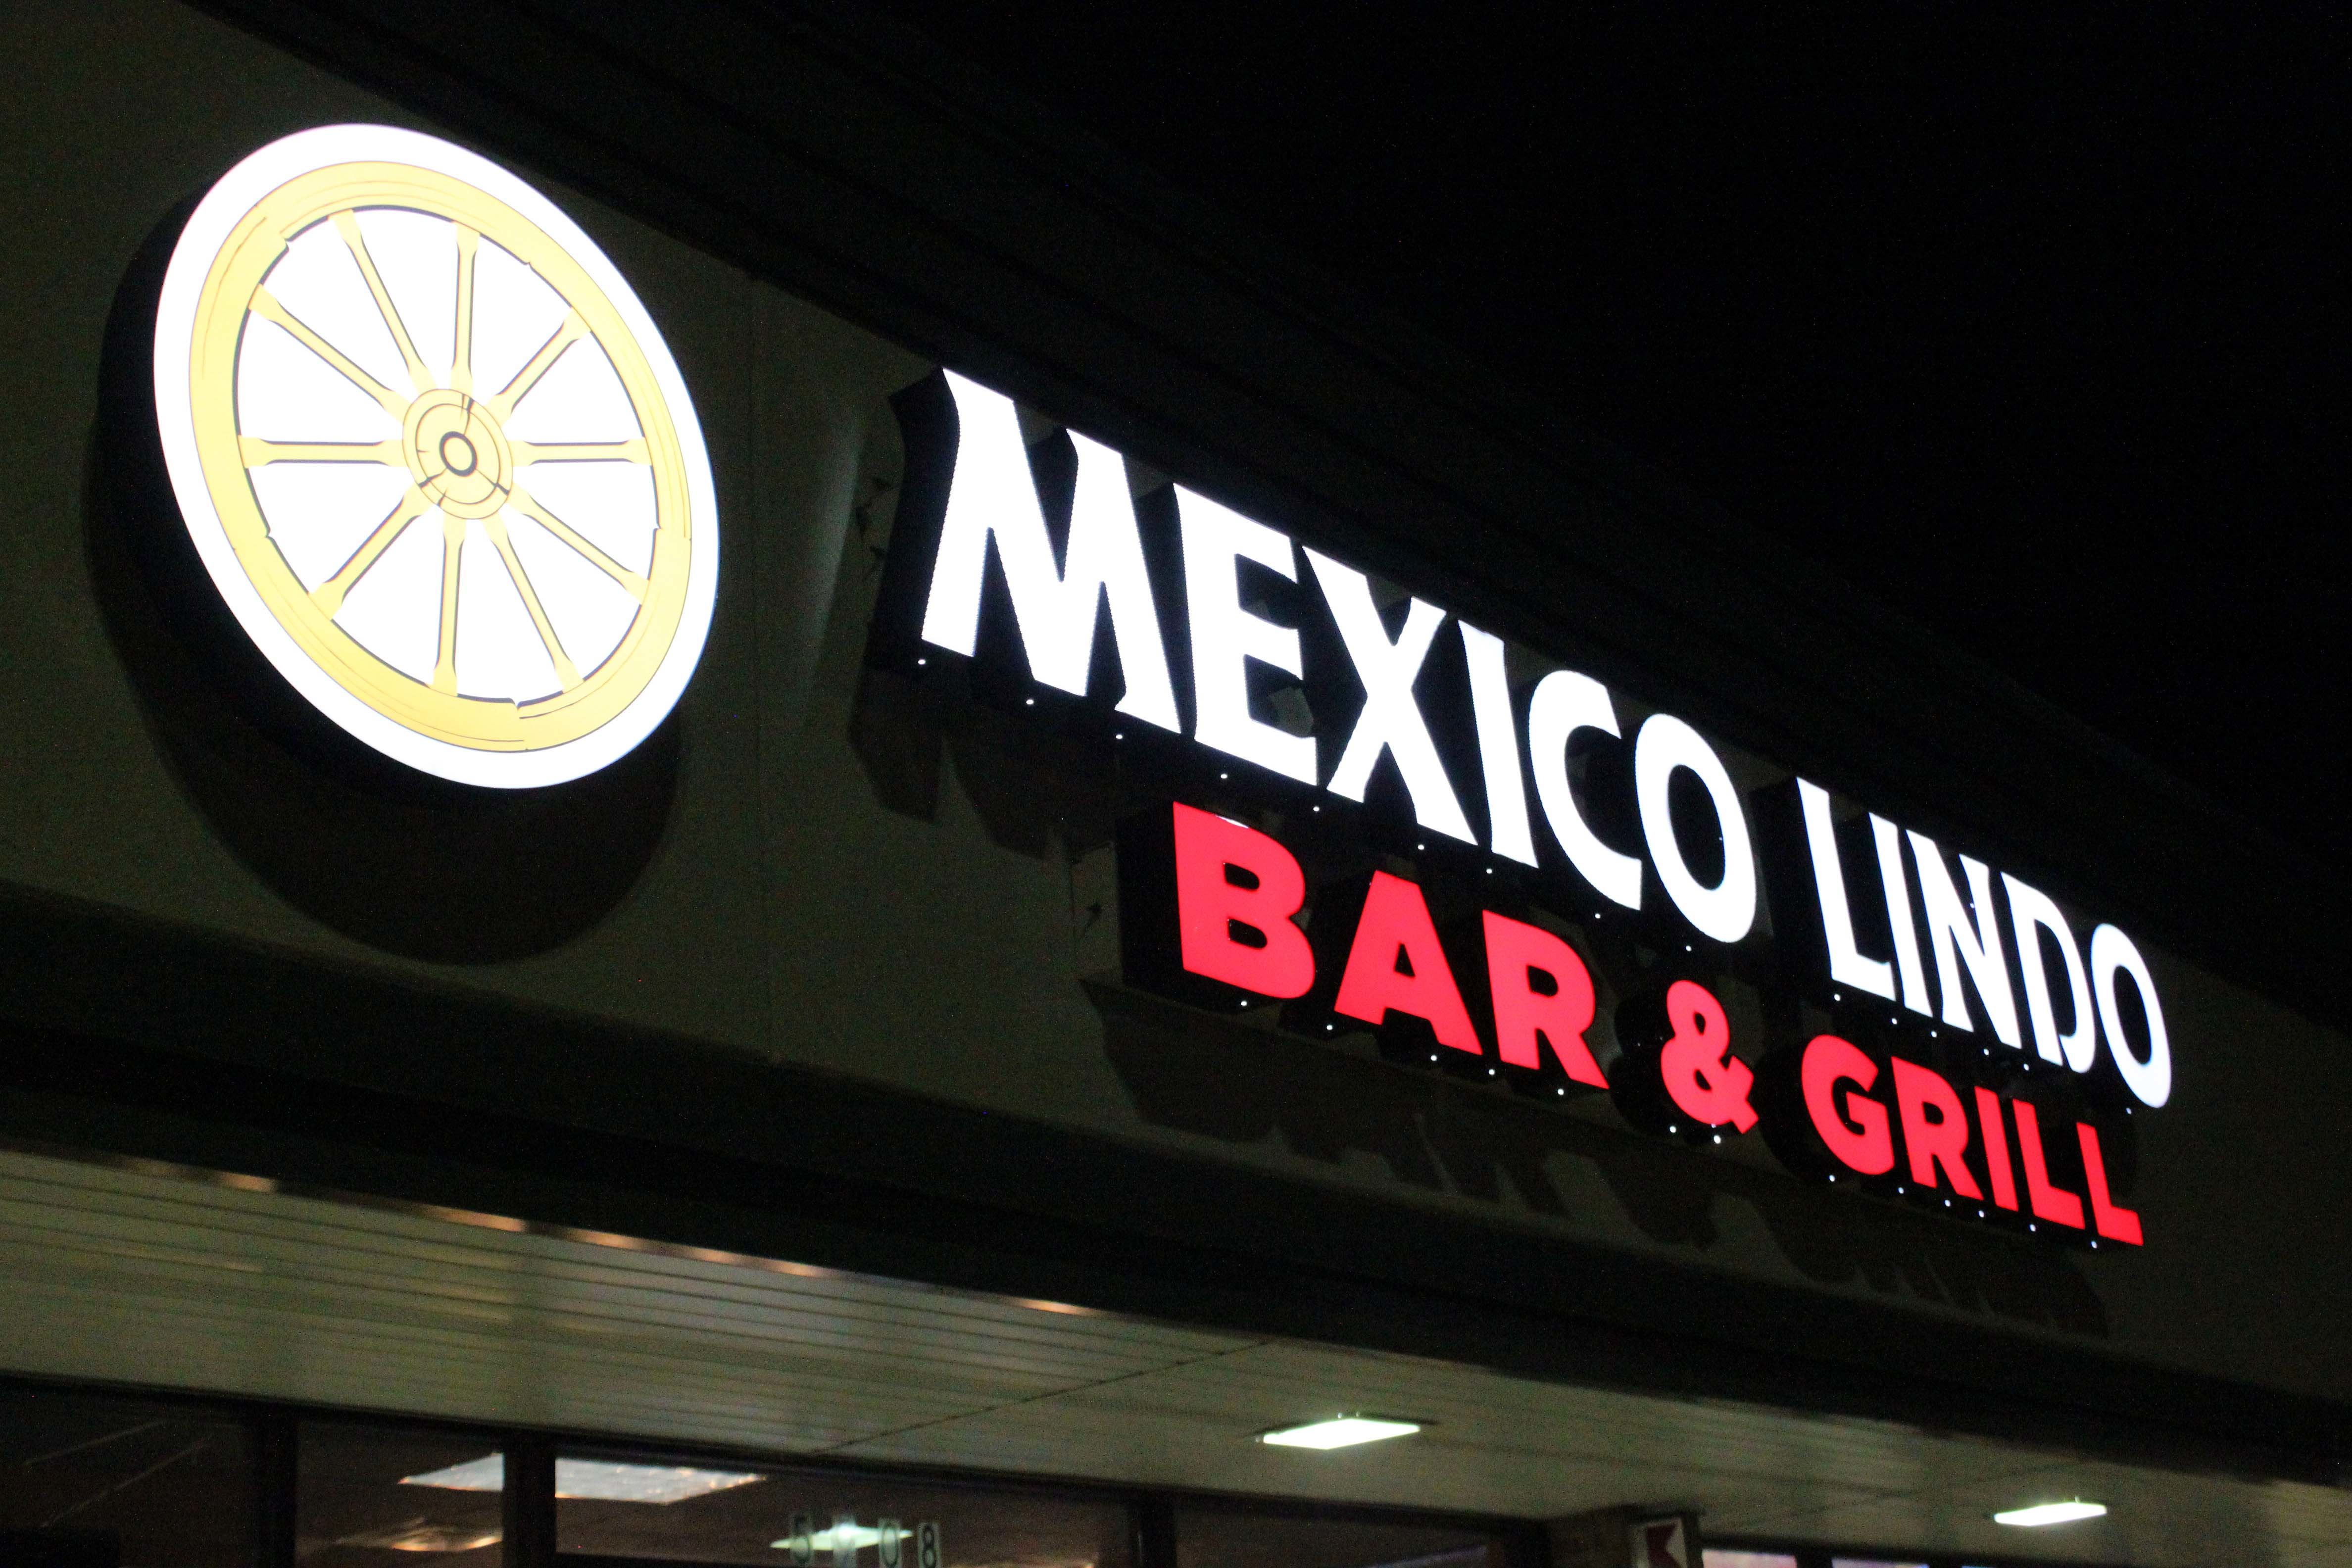 Mexico Lindo Mexican Restaurant Bar and Grill image 4